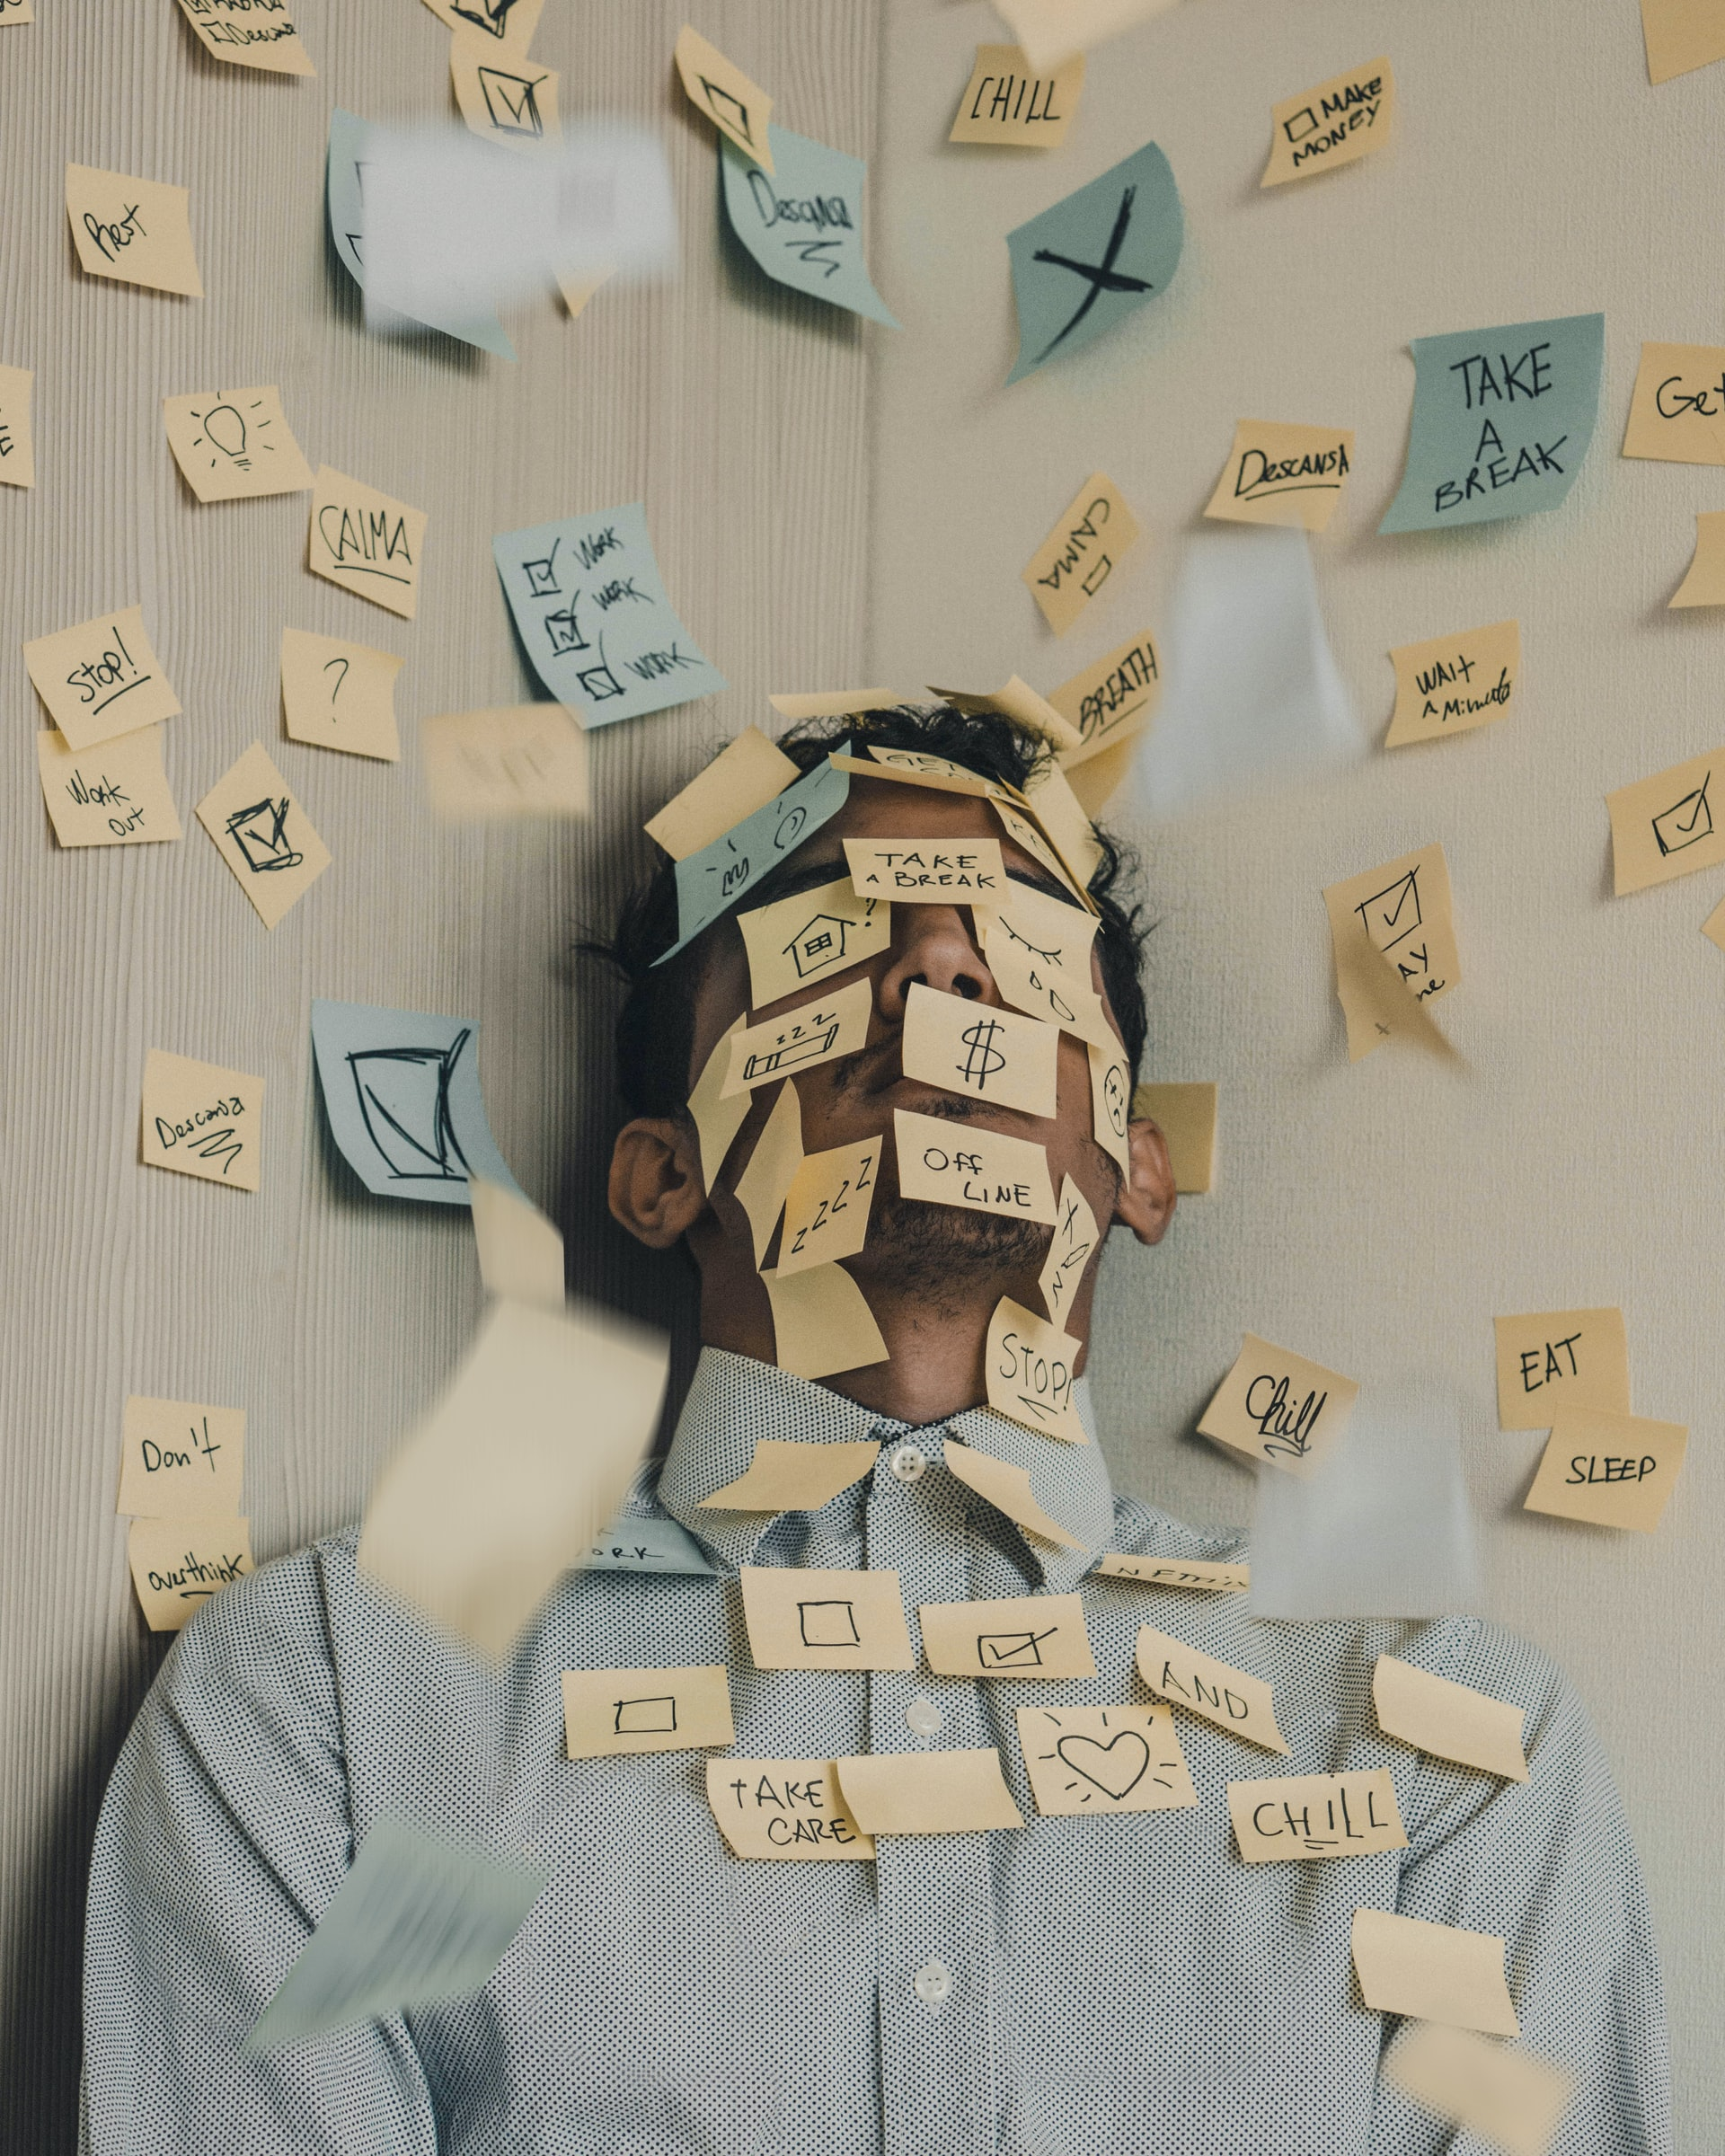 Man in a corner covered by post-it notes all over his face